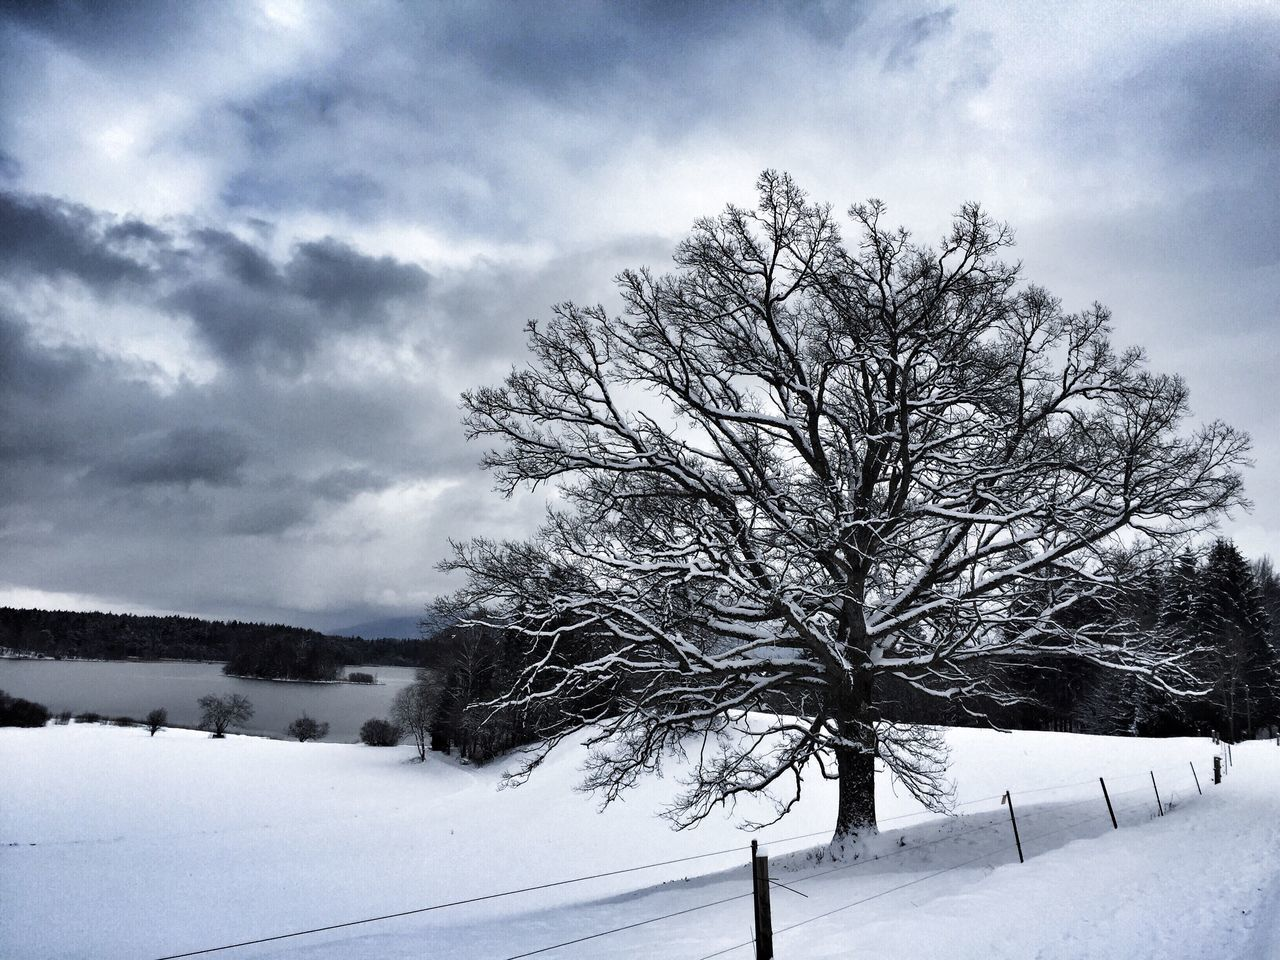 snow, winter, cold temperature, weather, tranquility, beauty in nature, nature, tranquil scene, tree, bare tree, scenics, landscape, sky, day, outdoors, no people, cloud - sky, branch